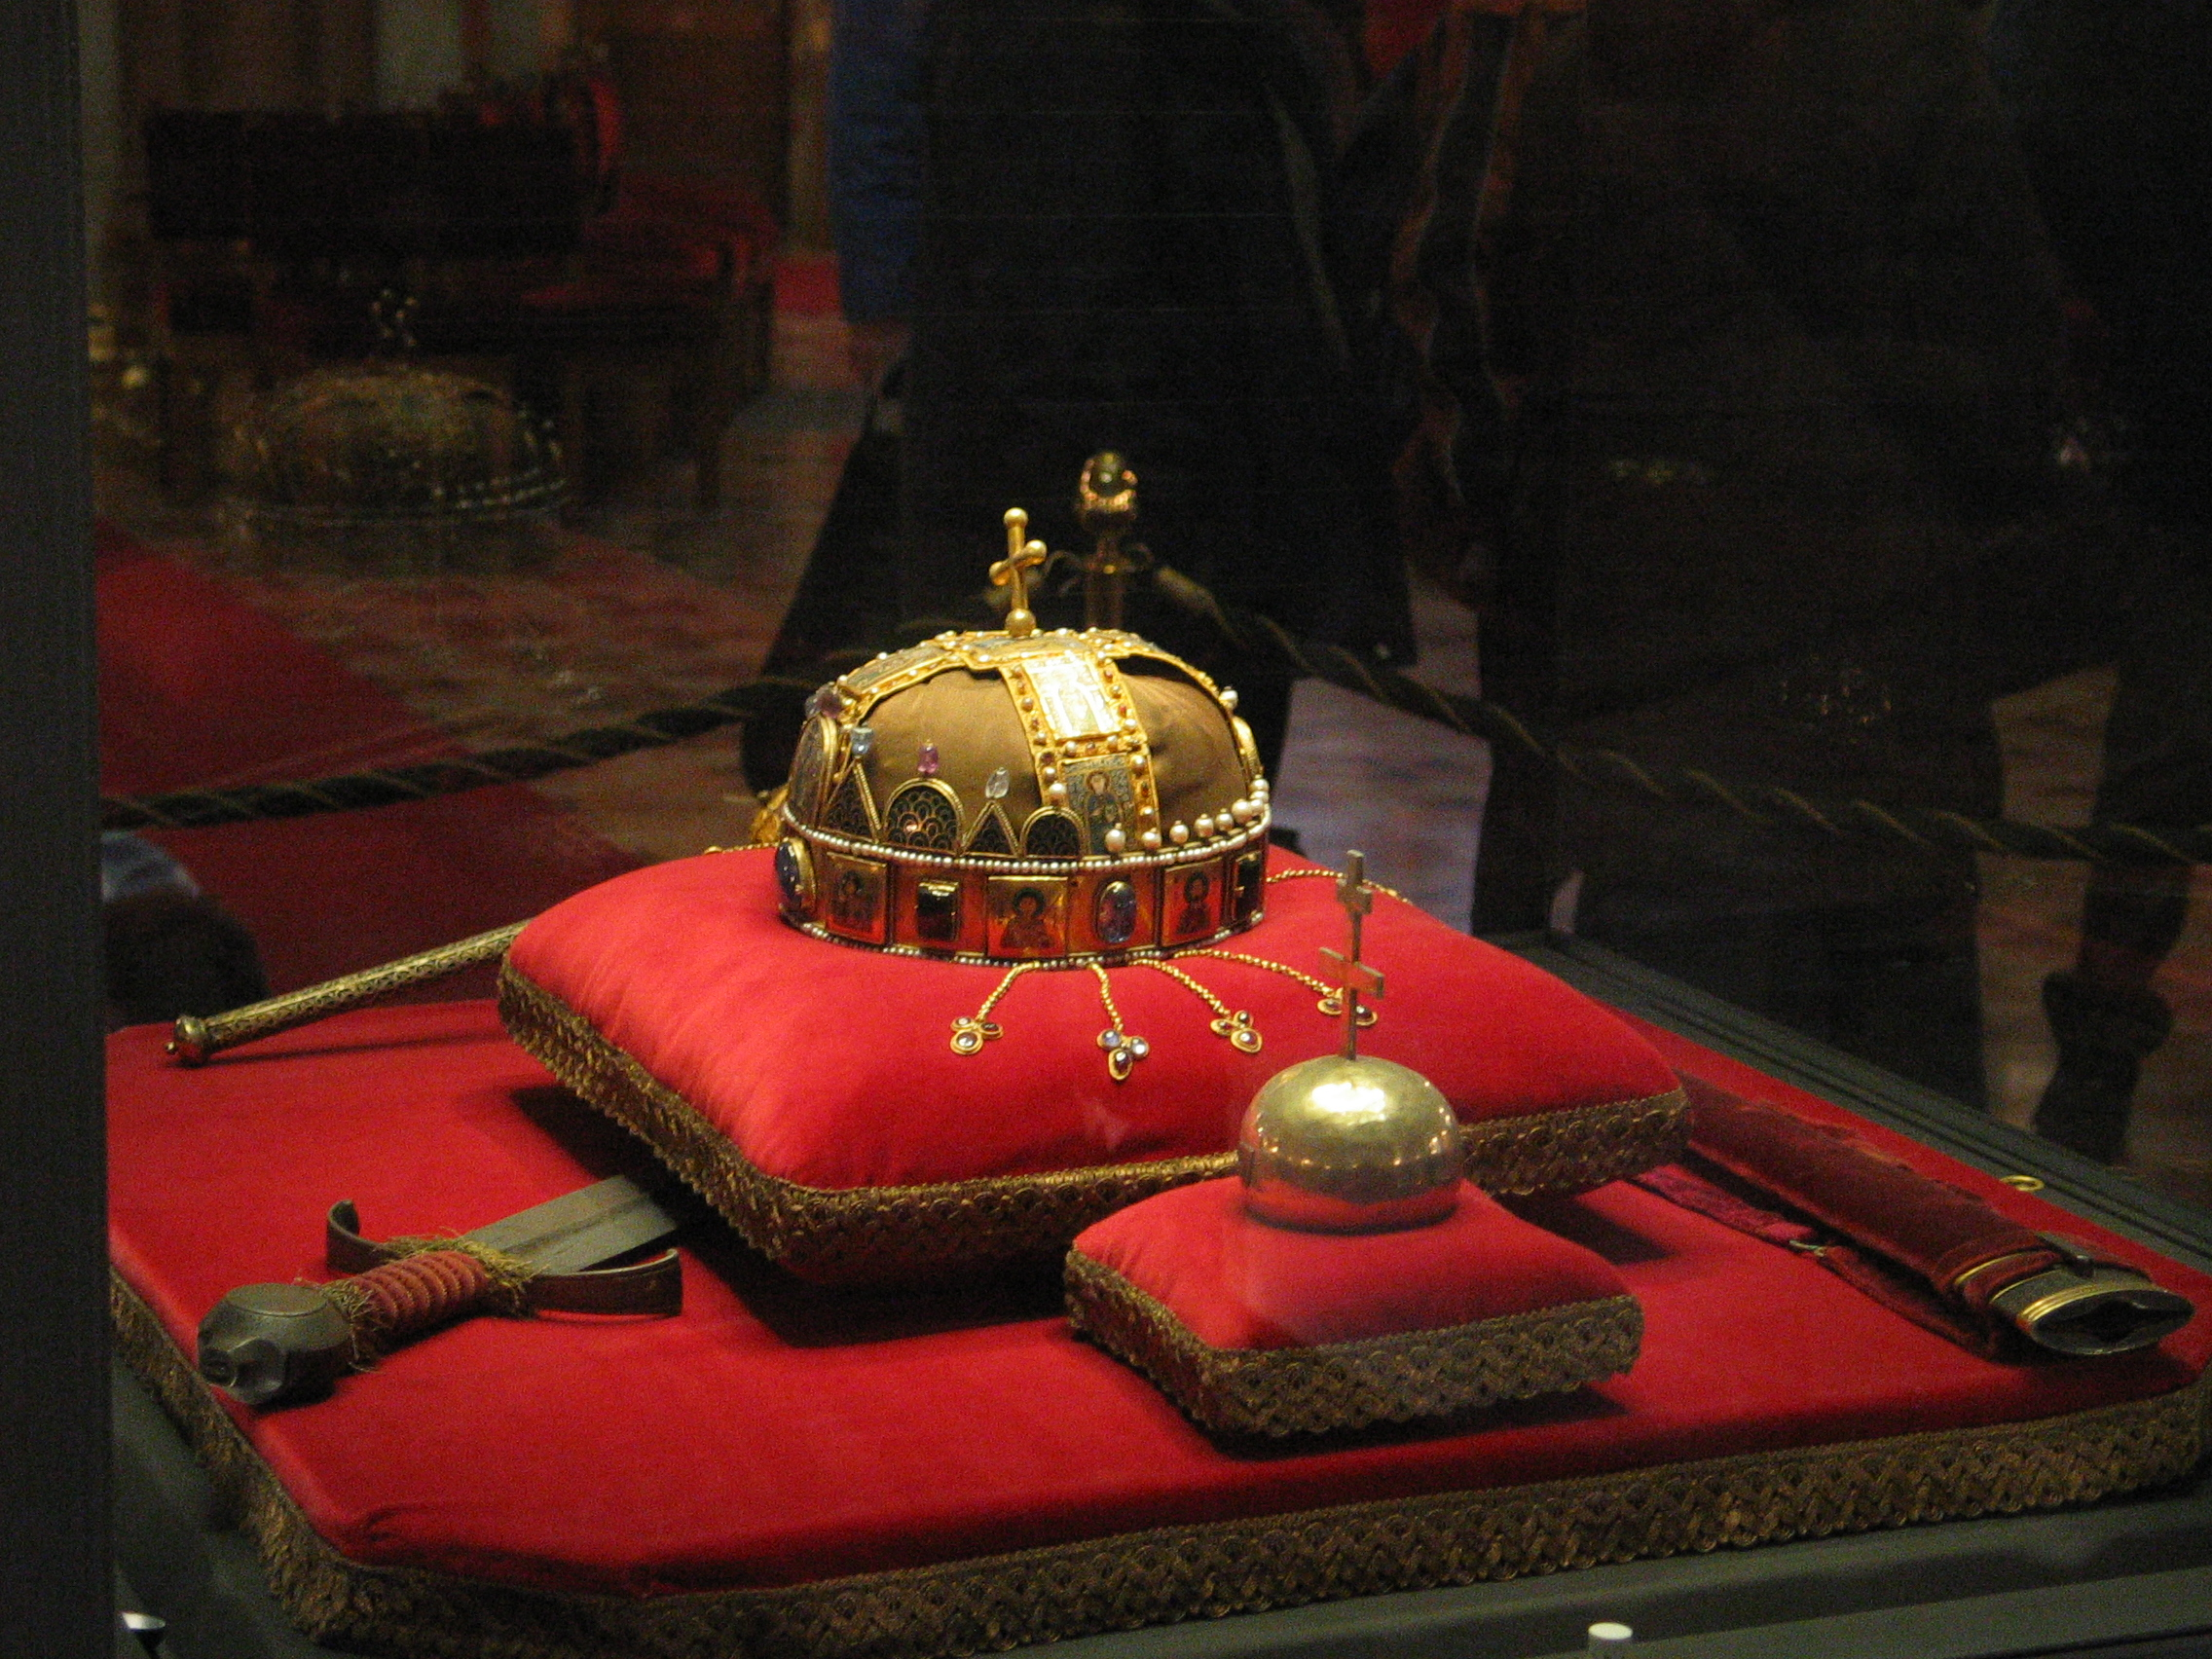 http://dic.academic.ru/pictures/wiki/files/67/Crown,_Sword_and_Globus_Cruciger_of_Hungary.jpg